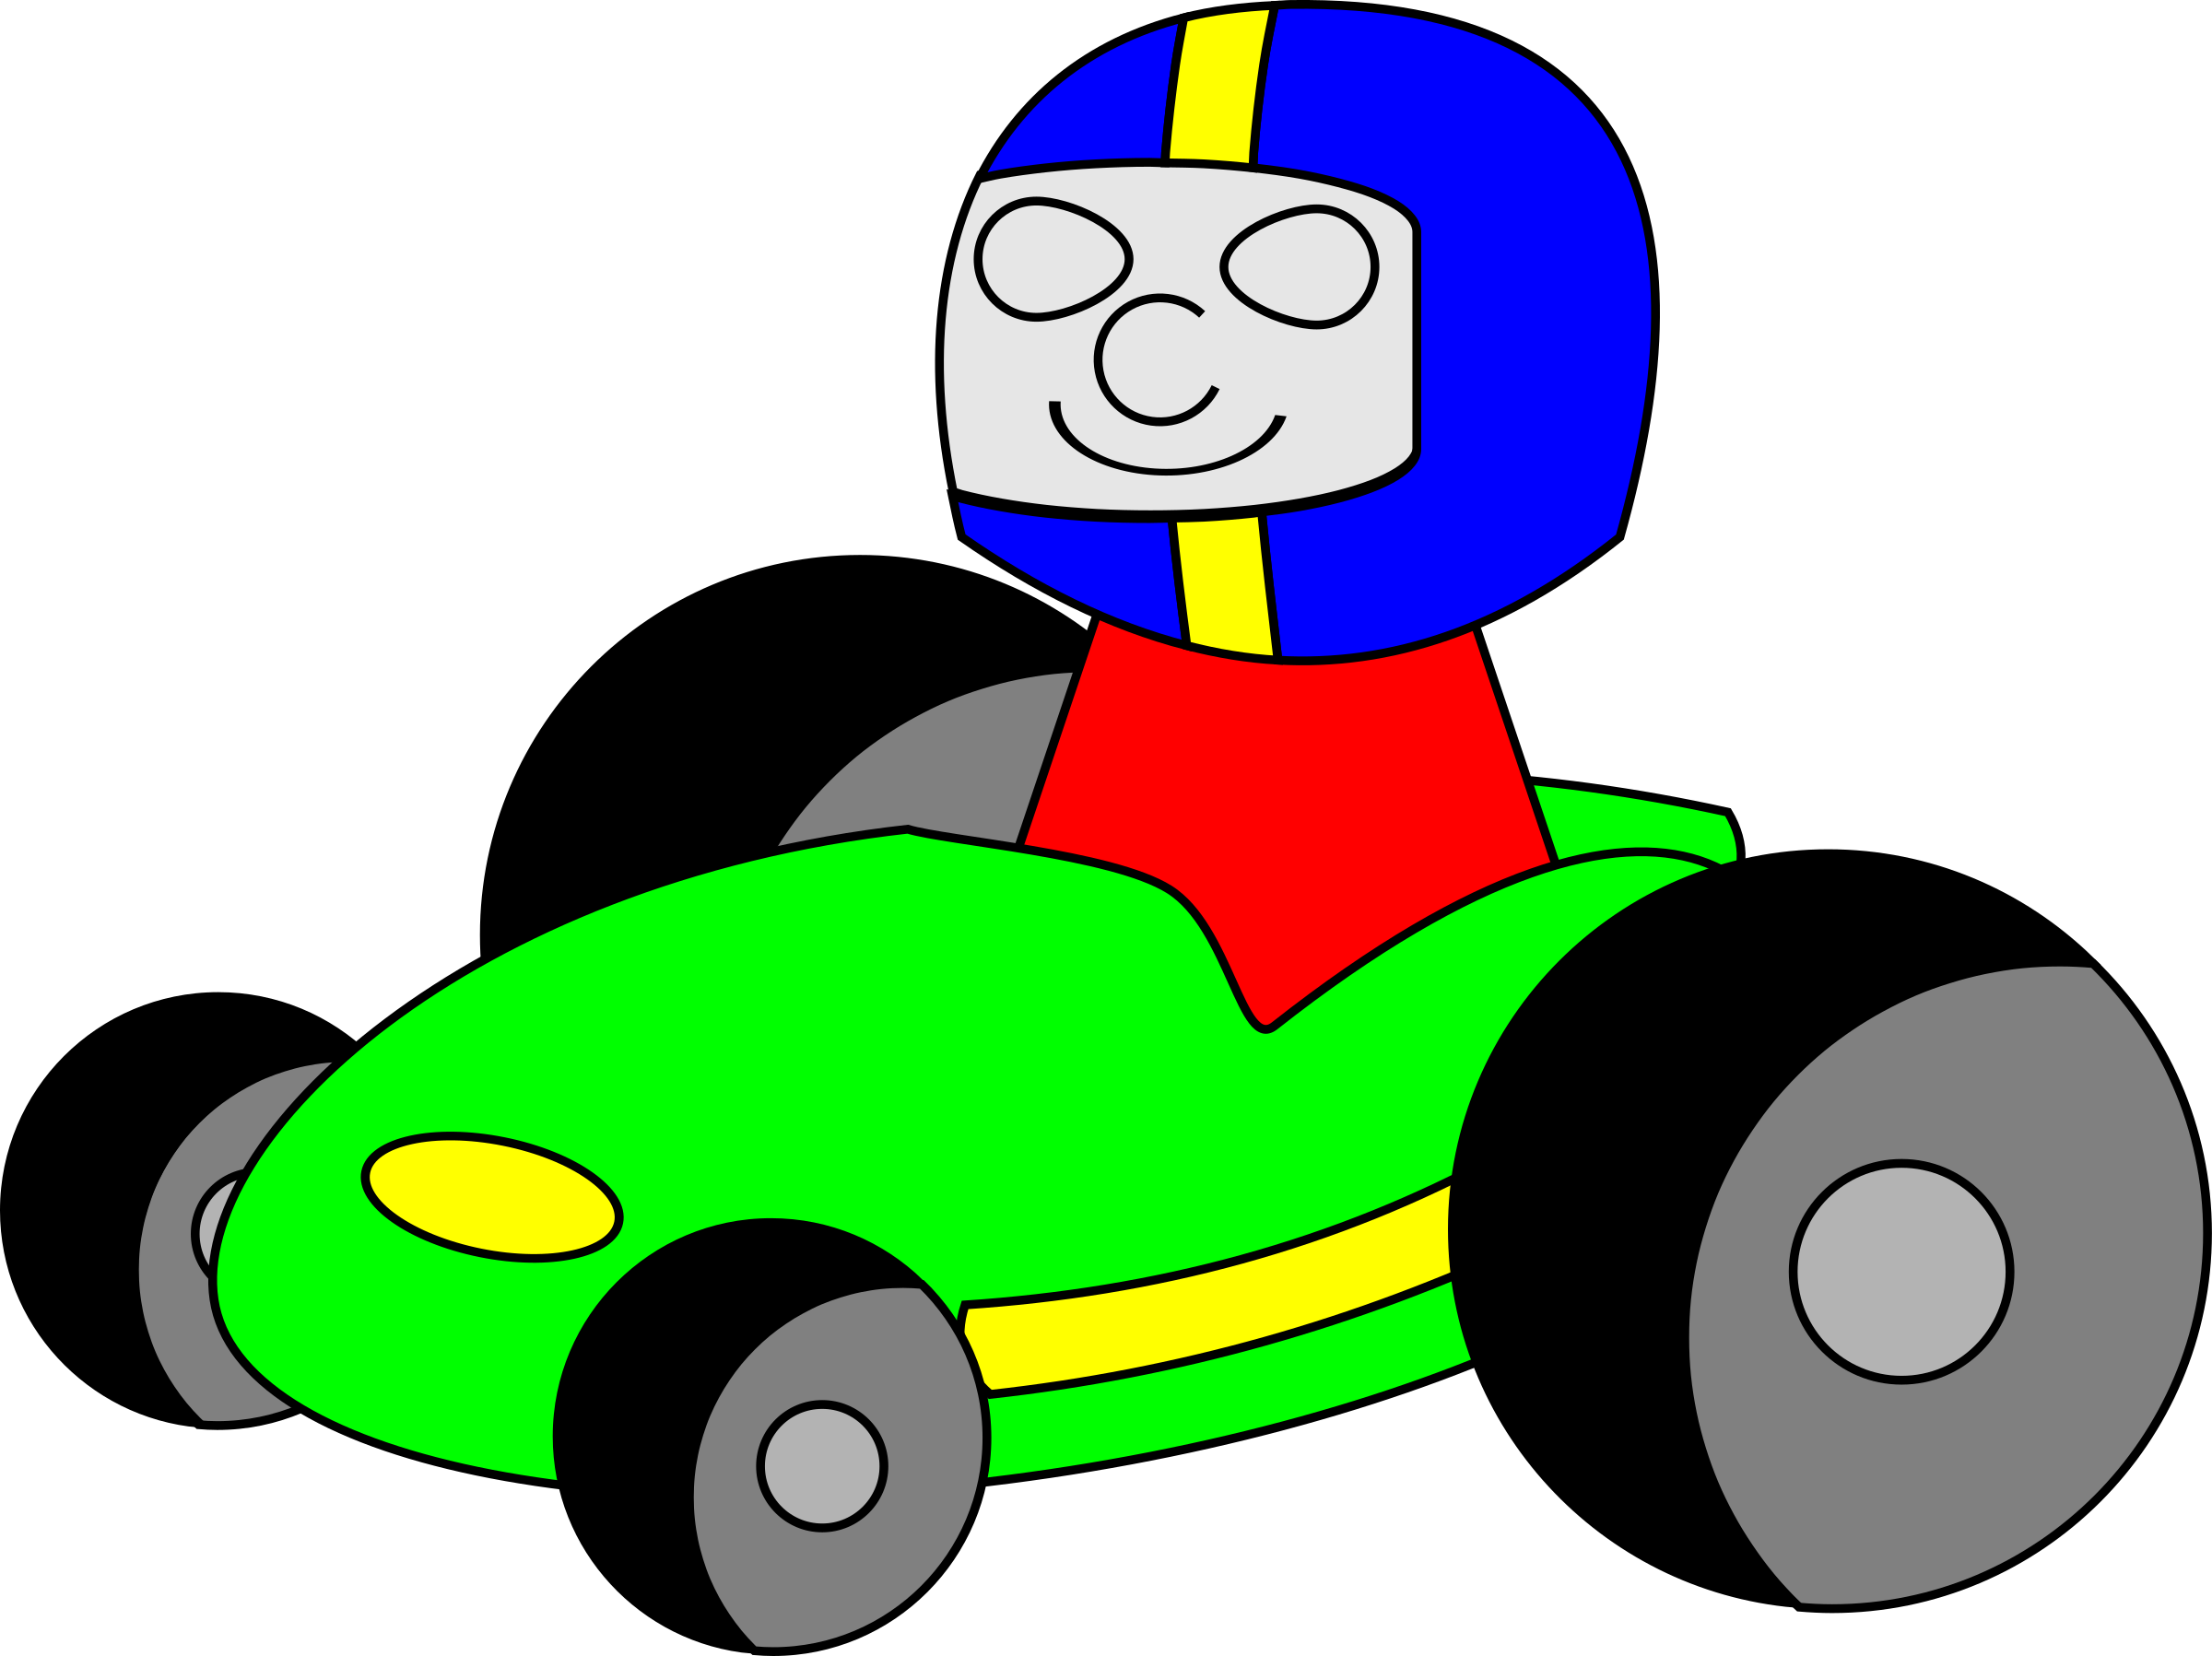 goKart by TomBrough